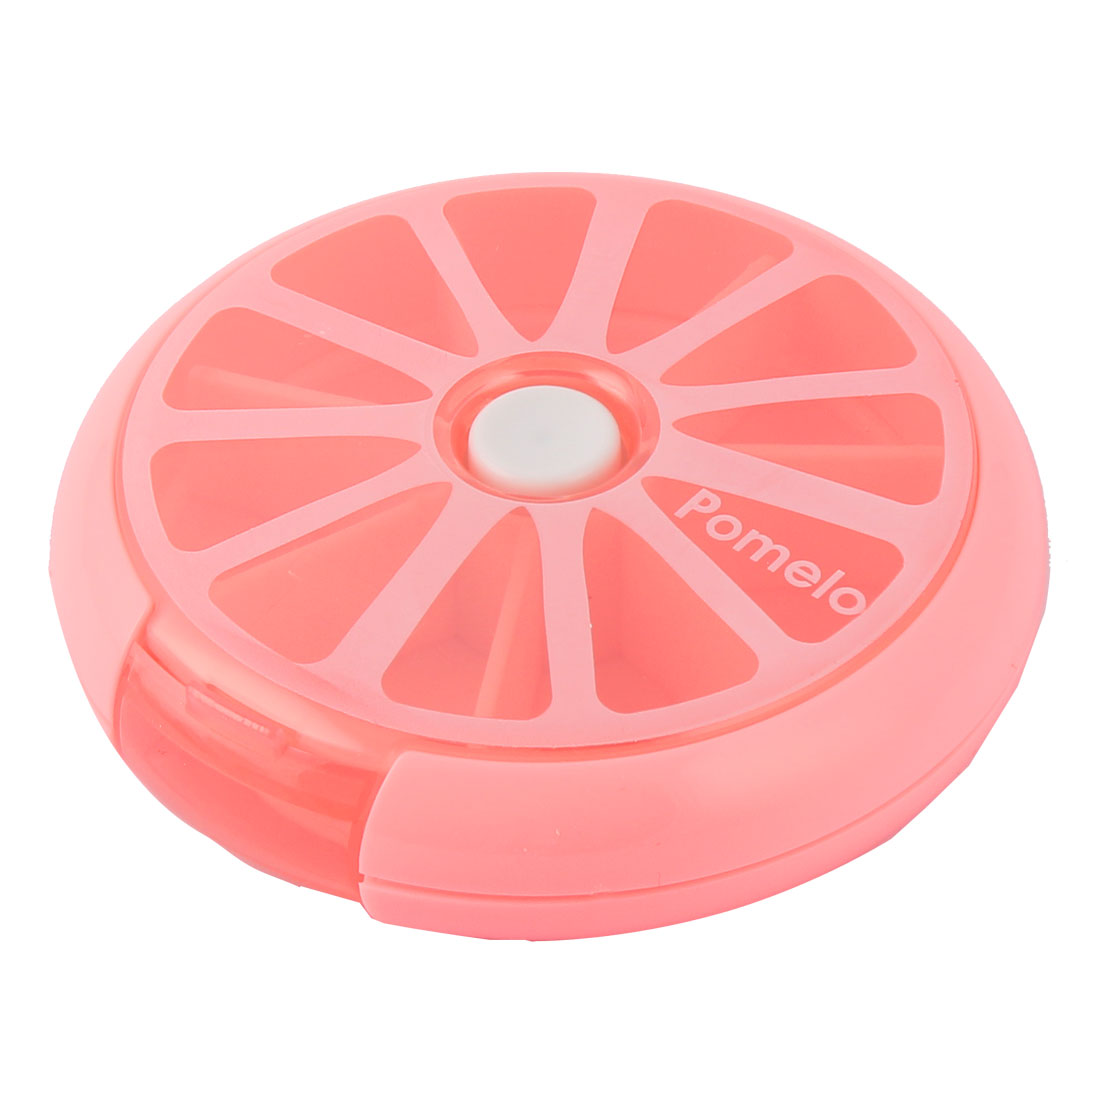 Household Travel Plastic Lemon Shaped Medicine Pill Box Case Container Fuchsia